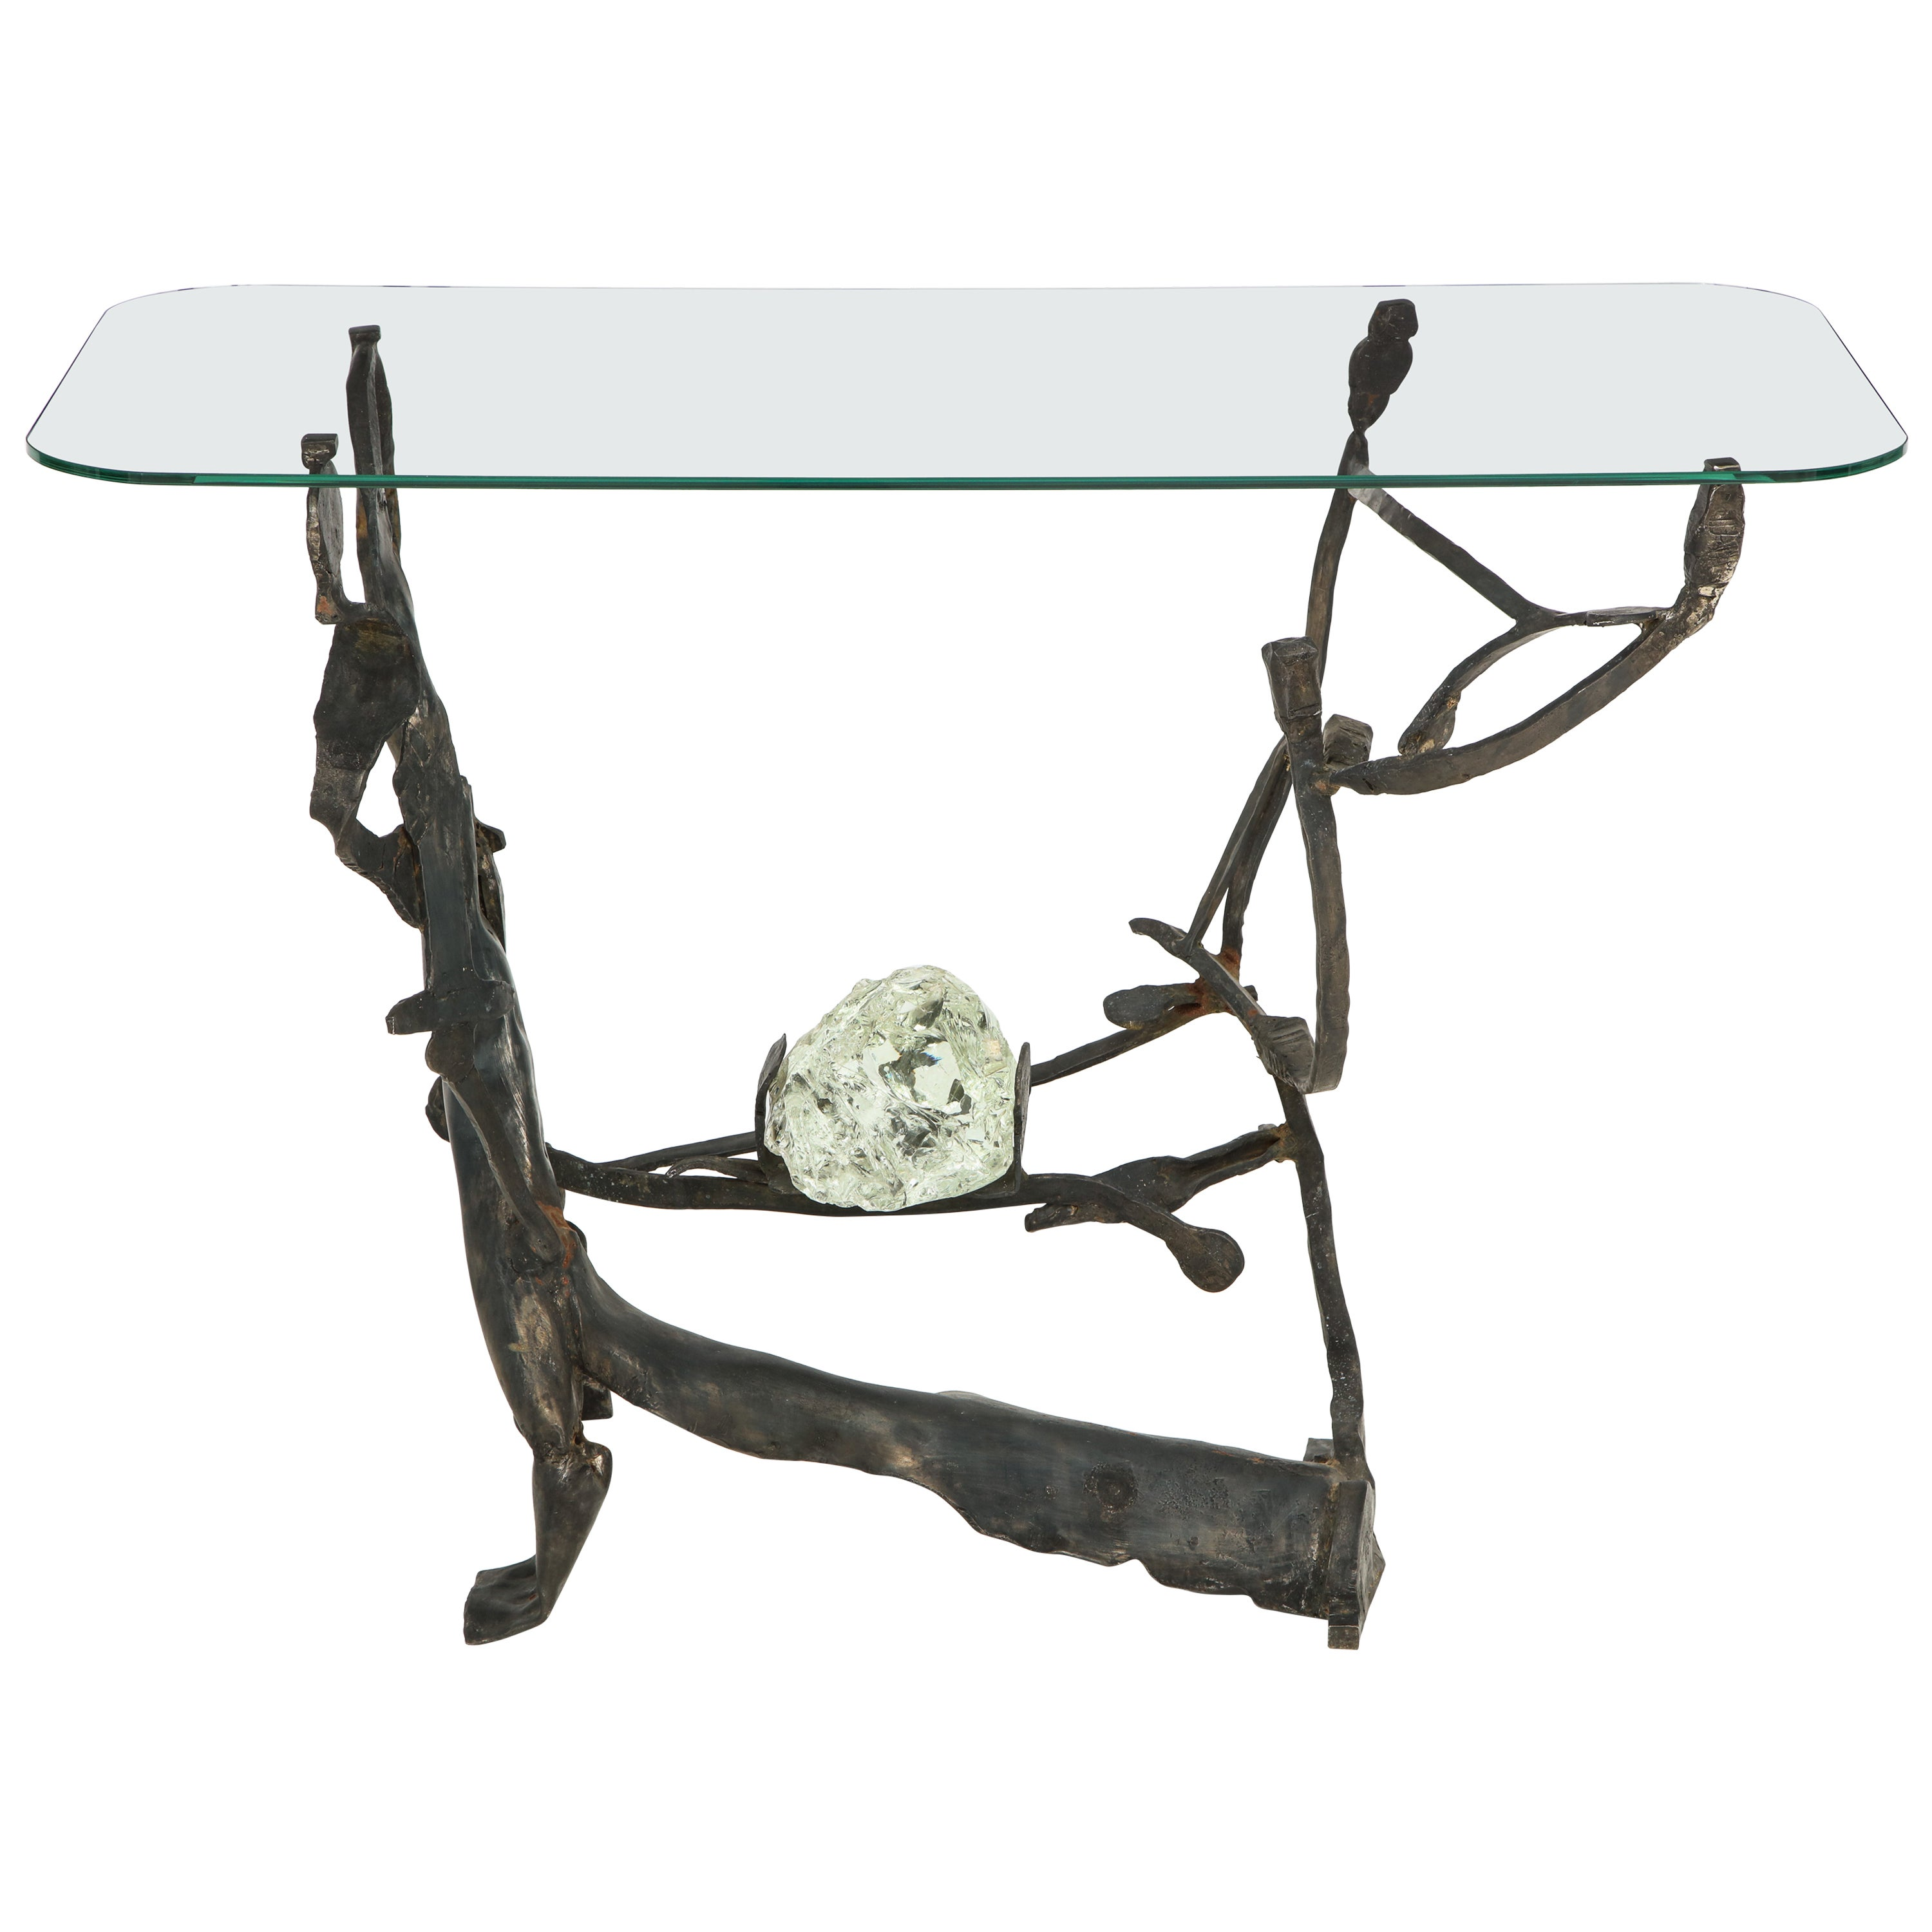 Rare Handcrafted Iron and Glass Brutalist Console by Salvino Marsura, Italy 1970